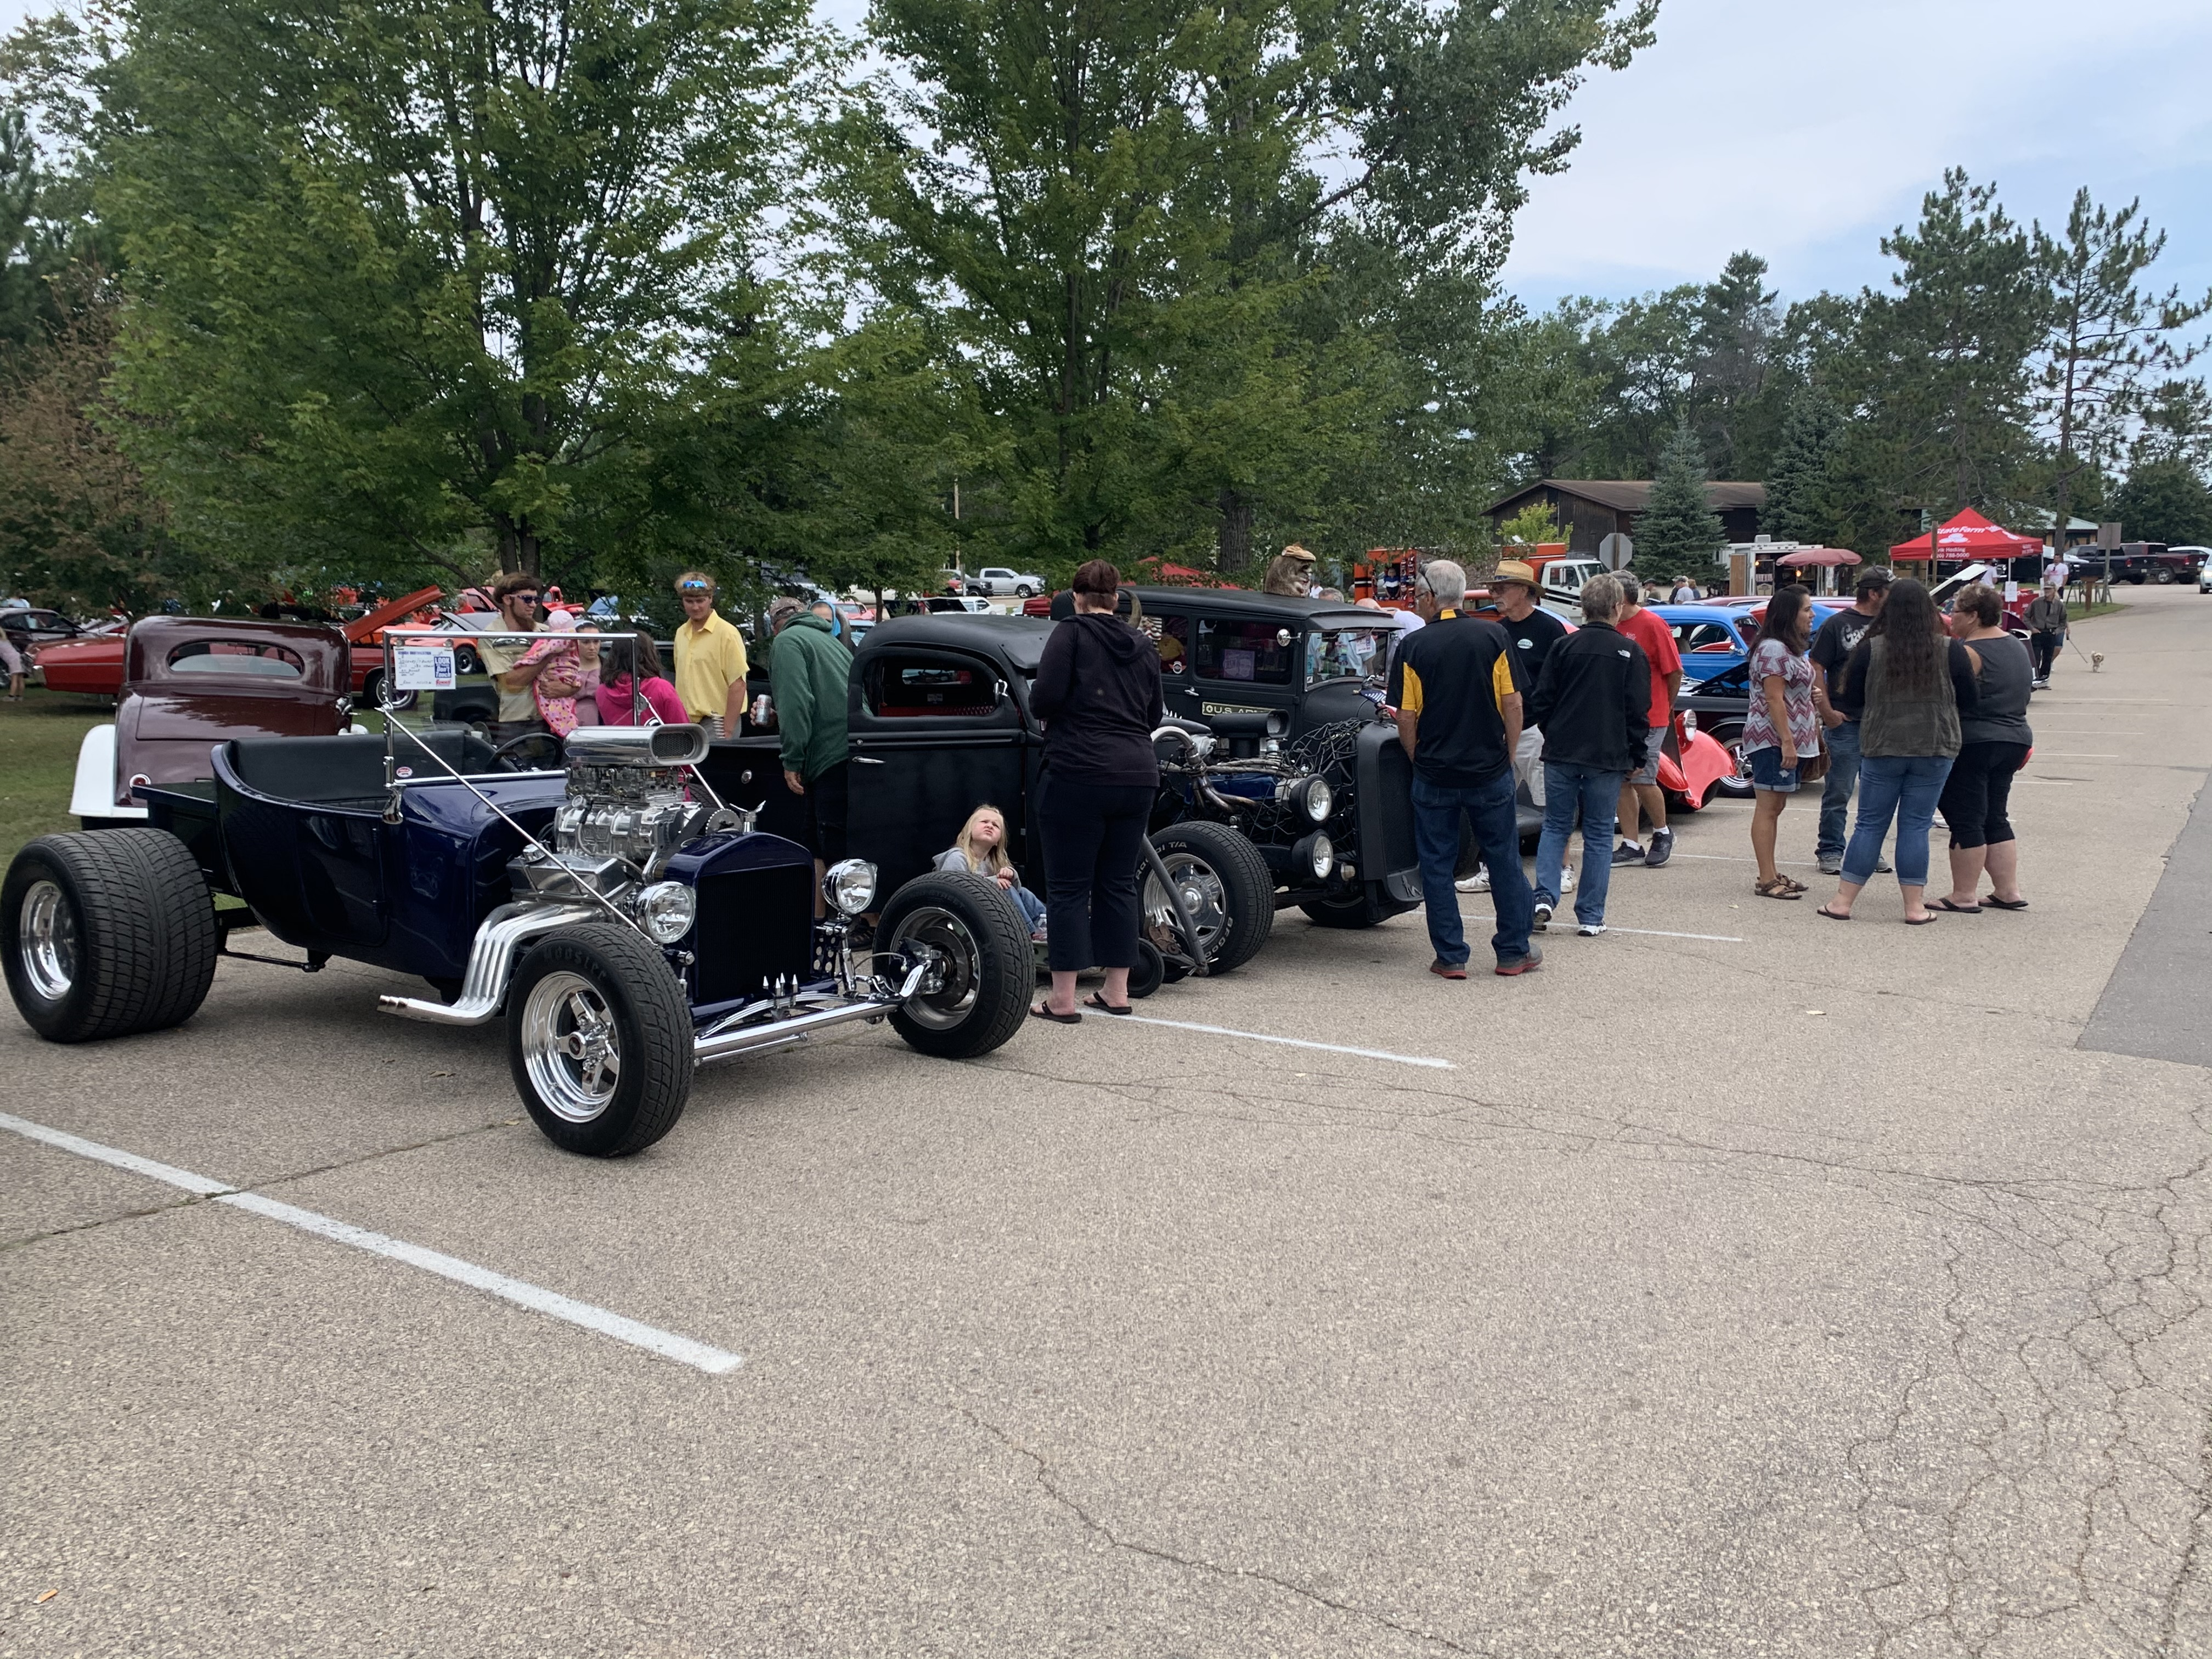 Crowds congregate by a group of hot rods at the car show at Shawano Lake County Park on Sept. 12.Luke Reimer | NEW Media